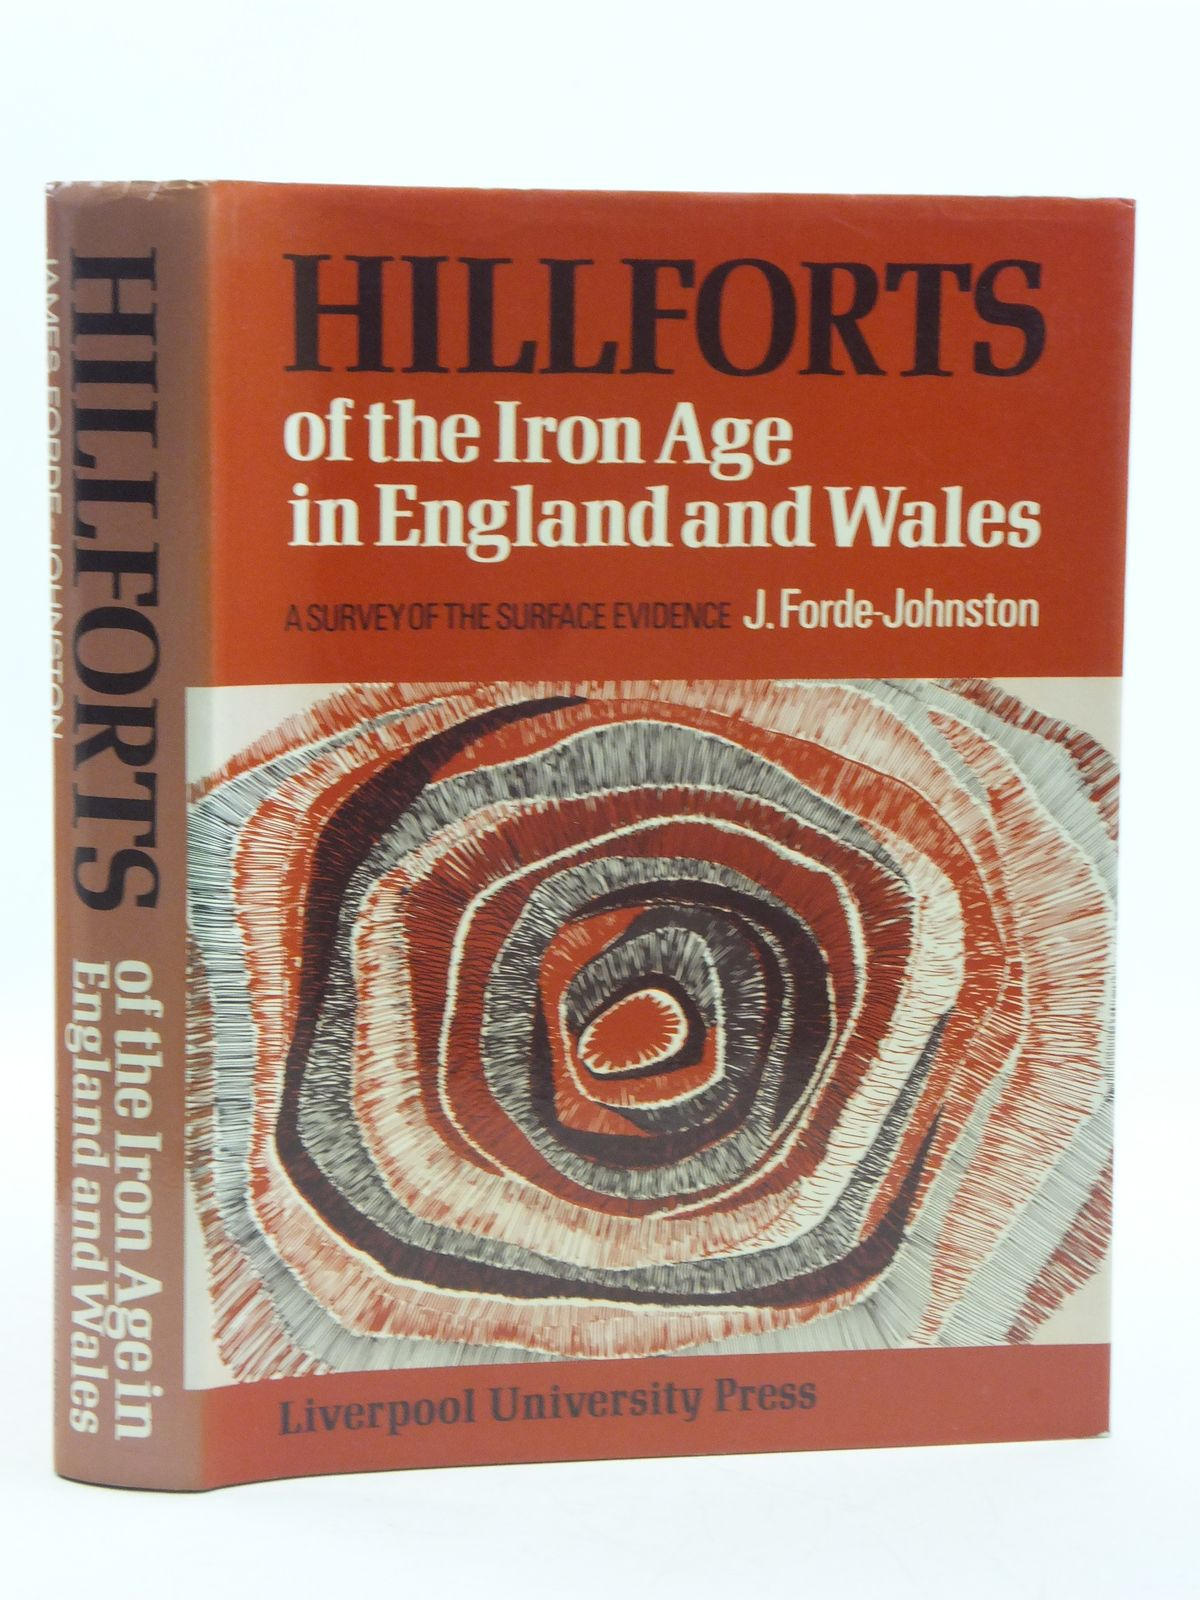 Photo of HILLFORTS OF THE IRON AGE IN ENGLAND AND WALES written by Forde-Johnston, J. published by Liverpool University Press (STOCK CODE: 2111279)  for sale by Stella & Rose's Books